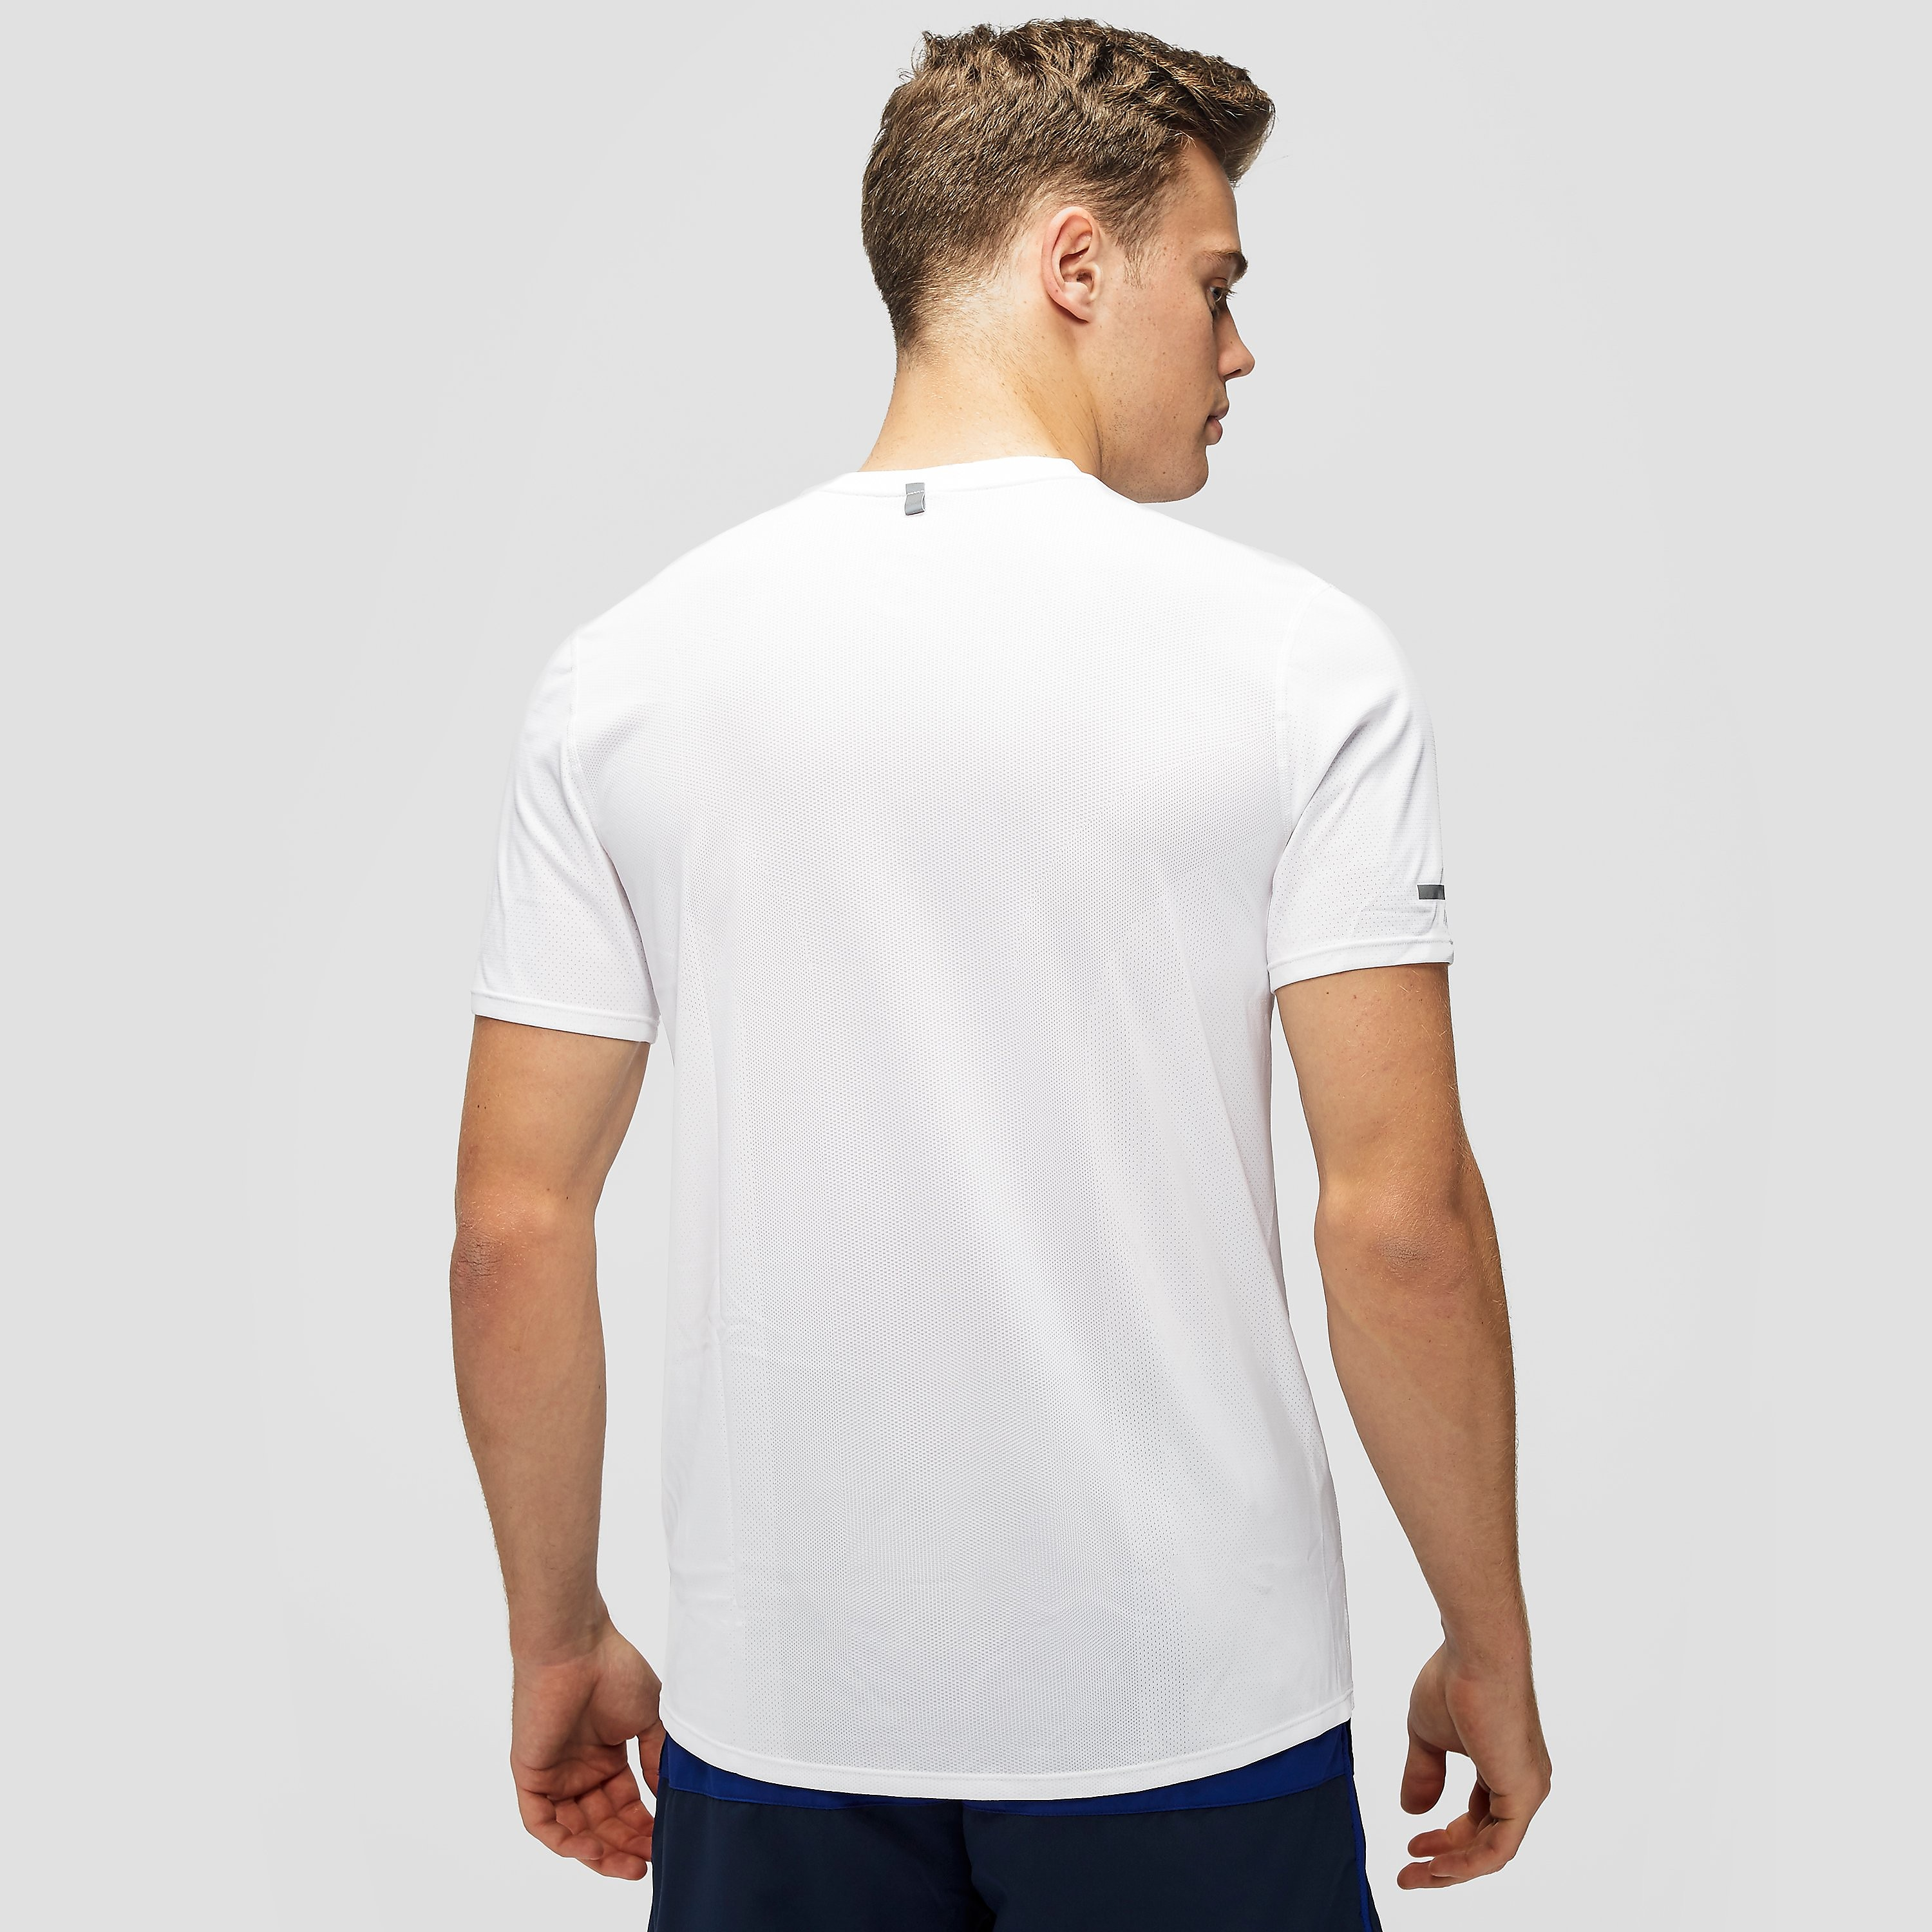 Nike Men's Dri-FIT Contour Running Top